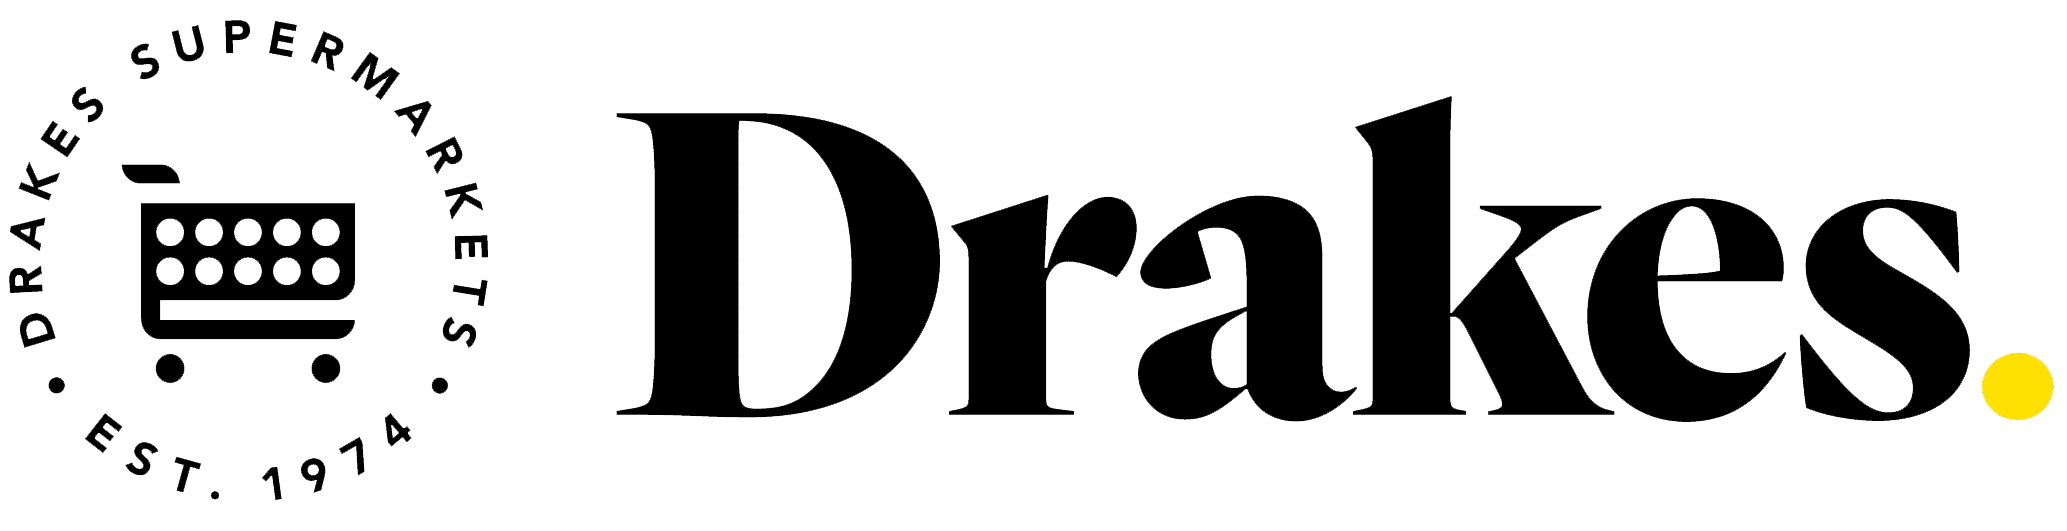 Drakes Supermarkets EDI Compliance with SPS Commerce